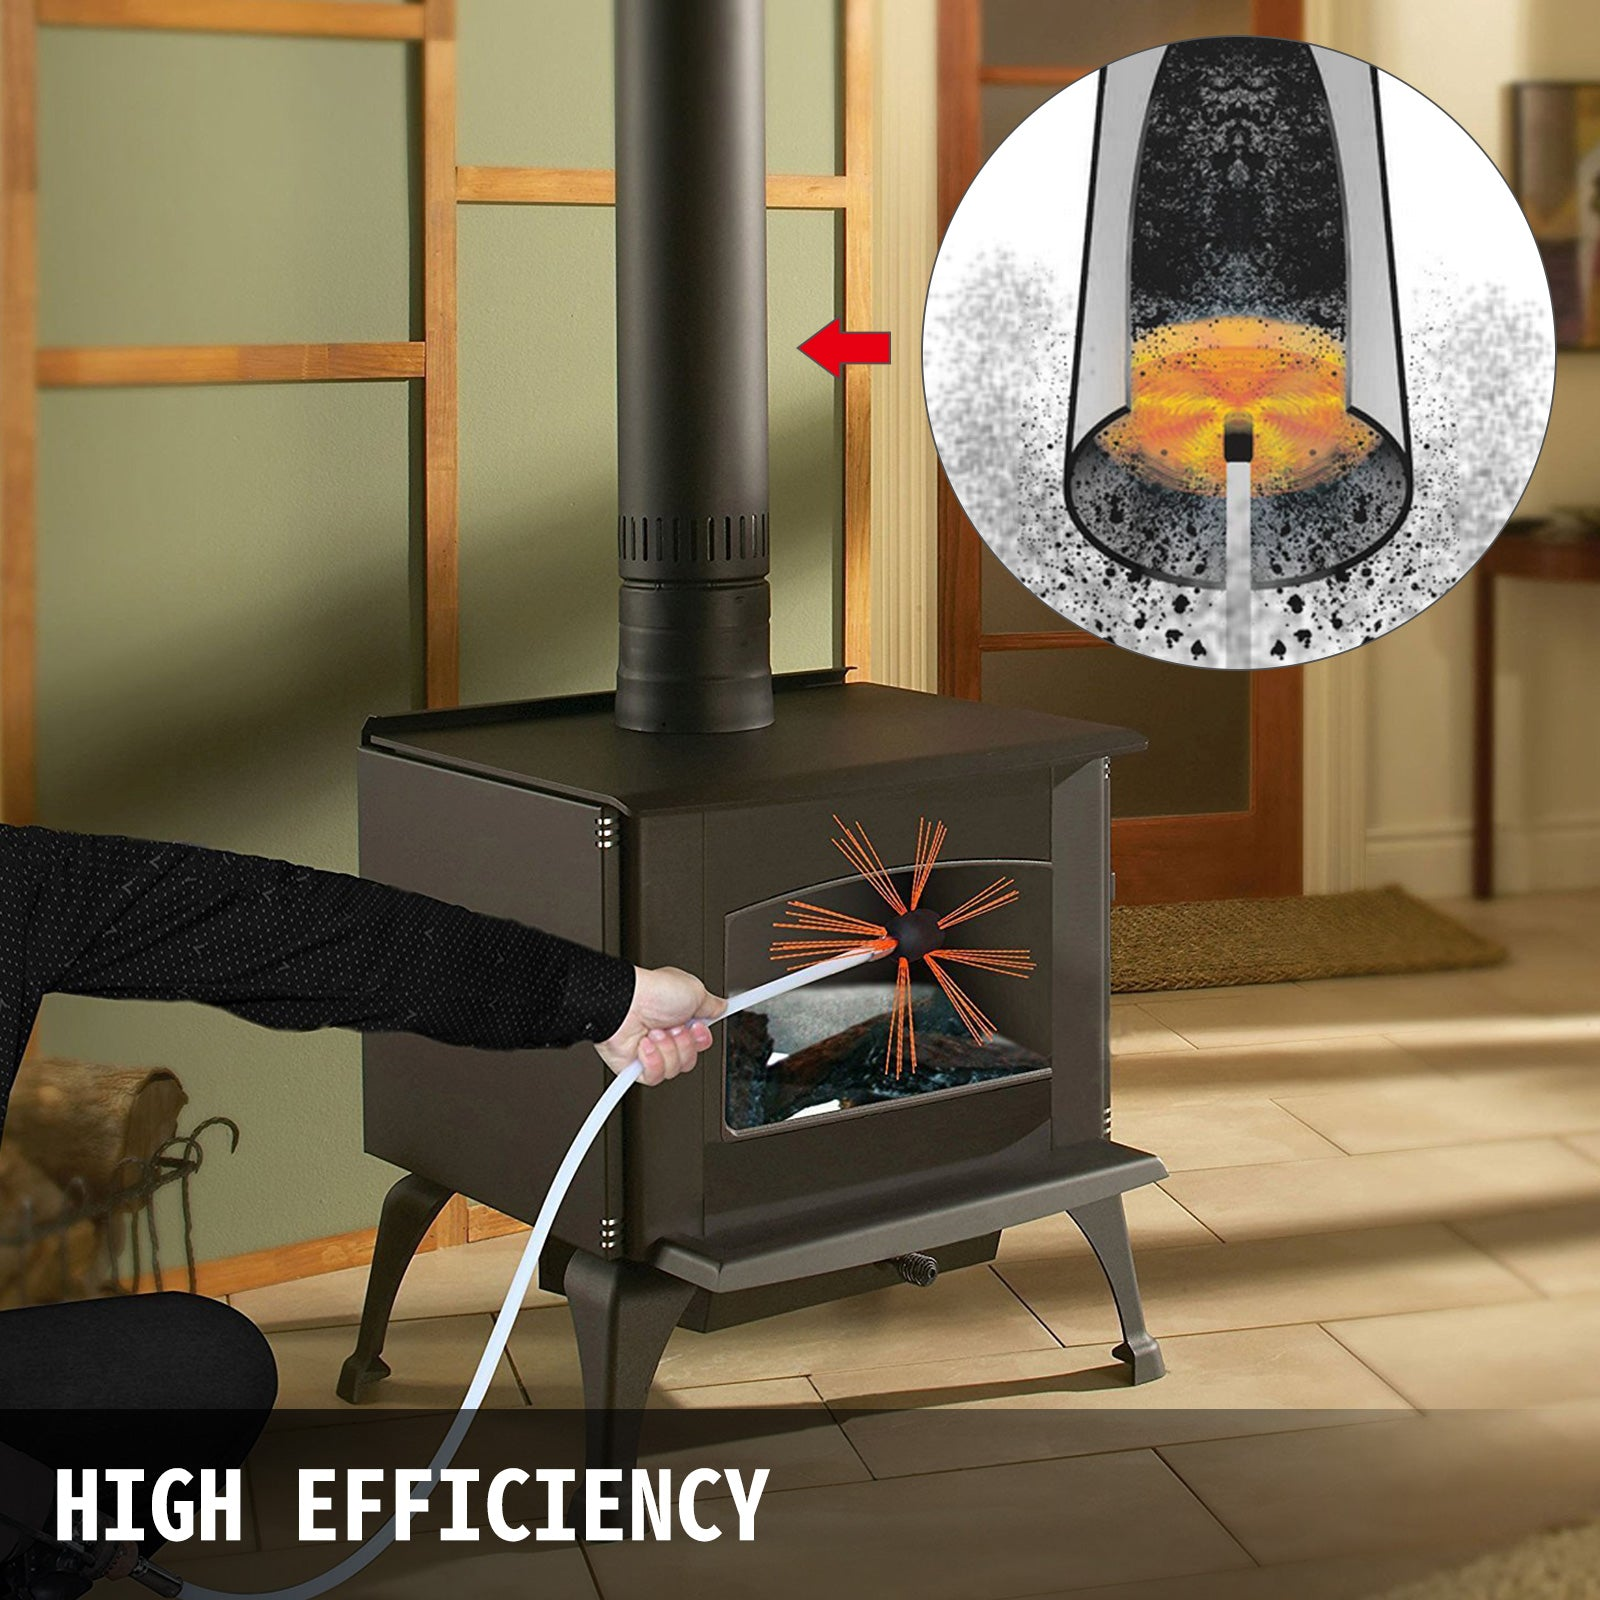 29.5ft Chimney Cleaner Sweep Kit Cleaning System Rotary Brush Rod Fireplace 9m